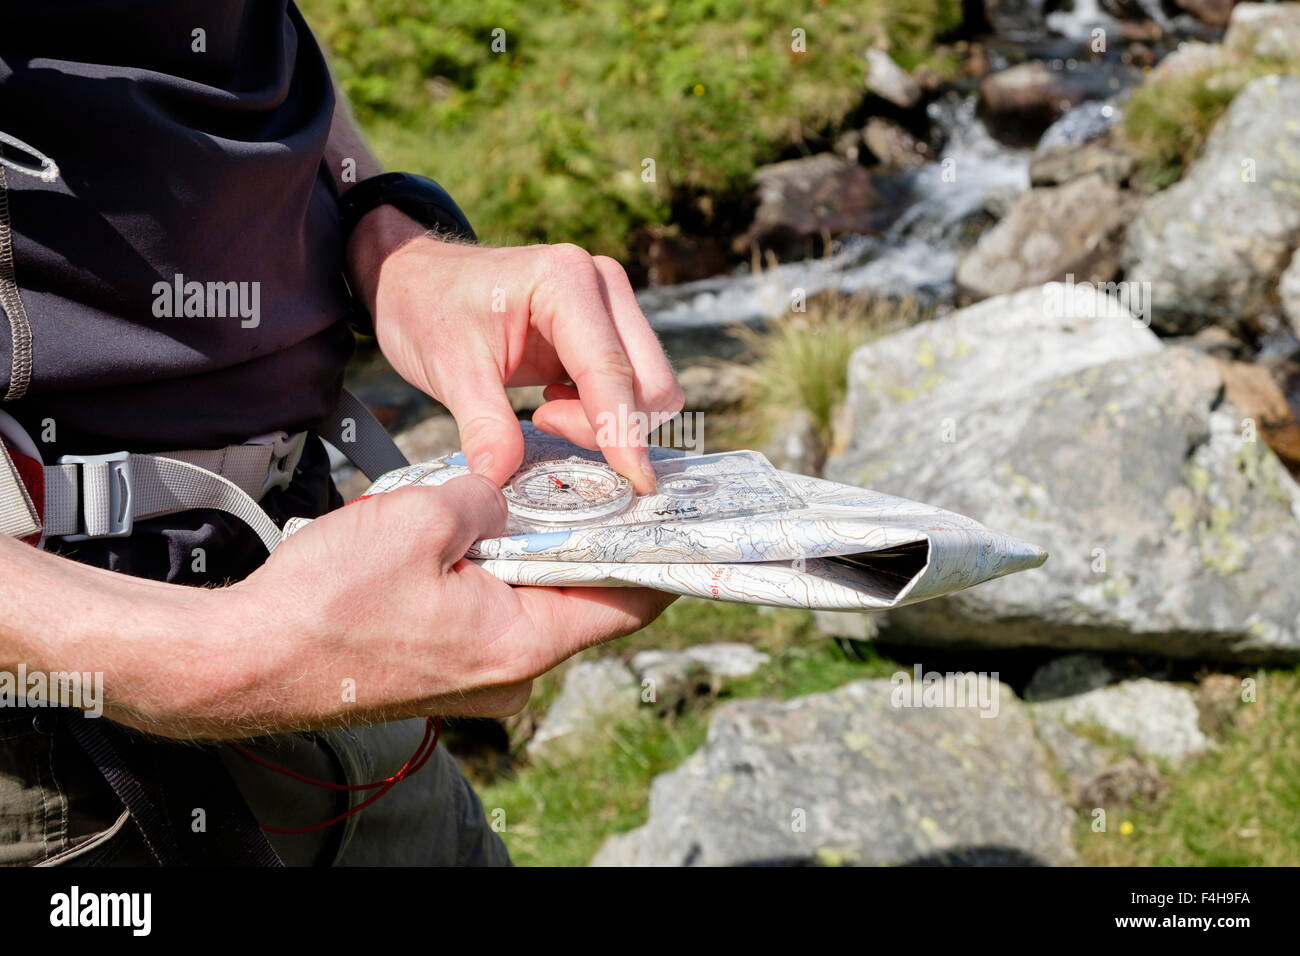 Hiker taking a bearing using a hiking map and compass for navigating a right direction in British mountains seen - Stock Image